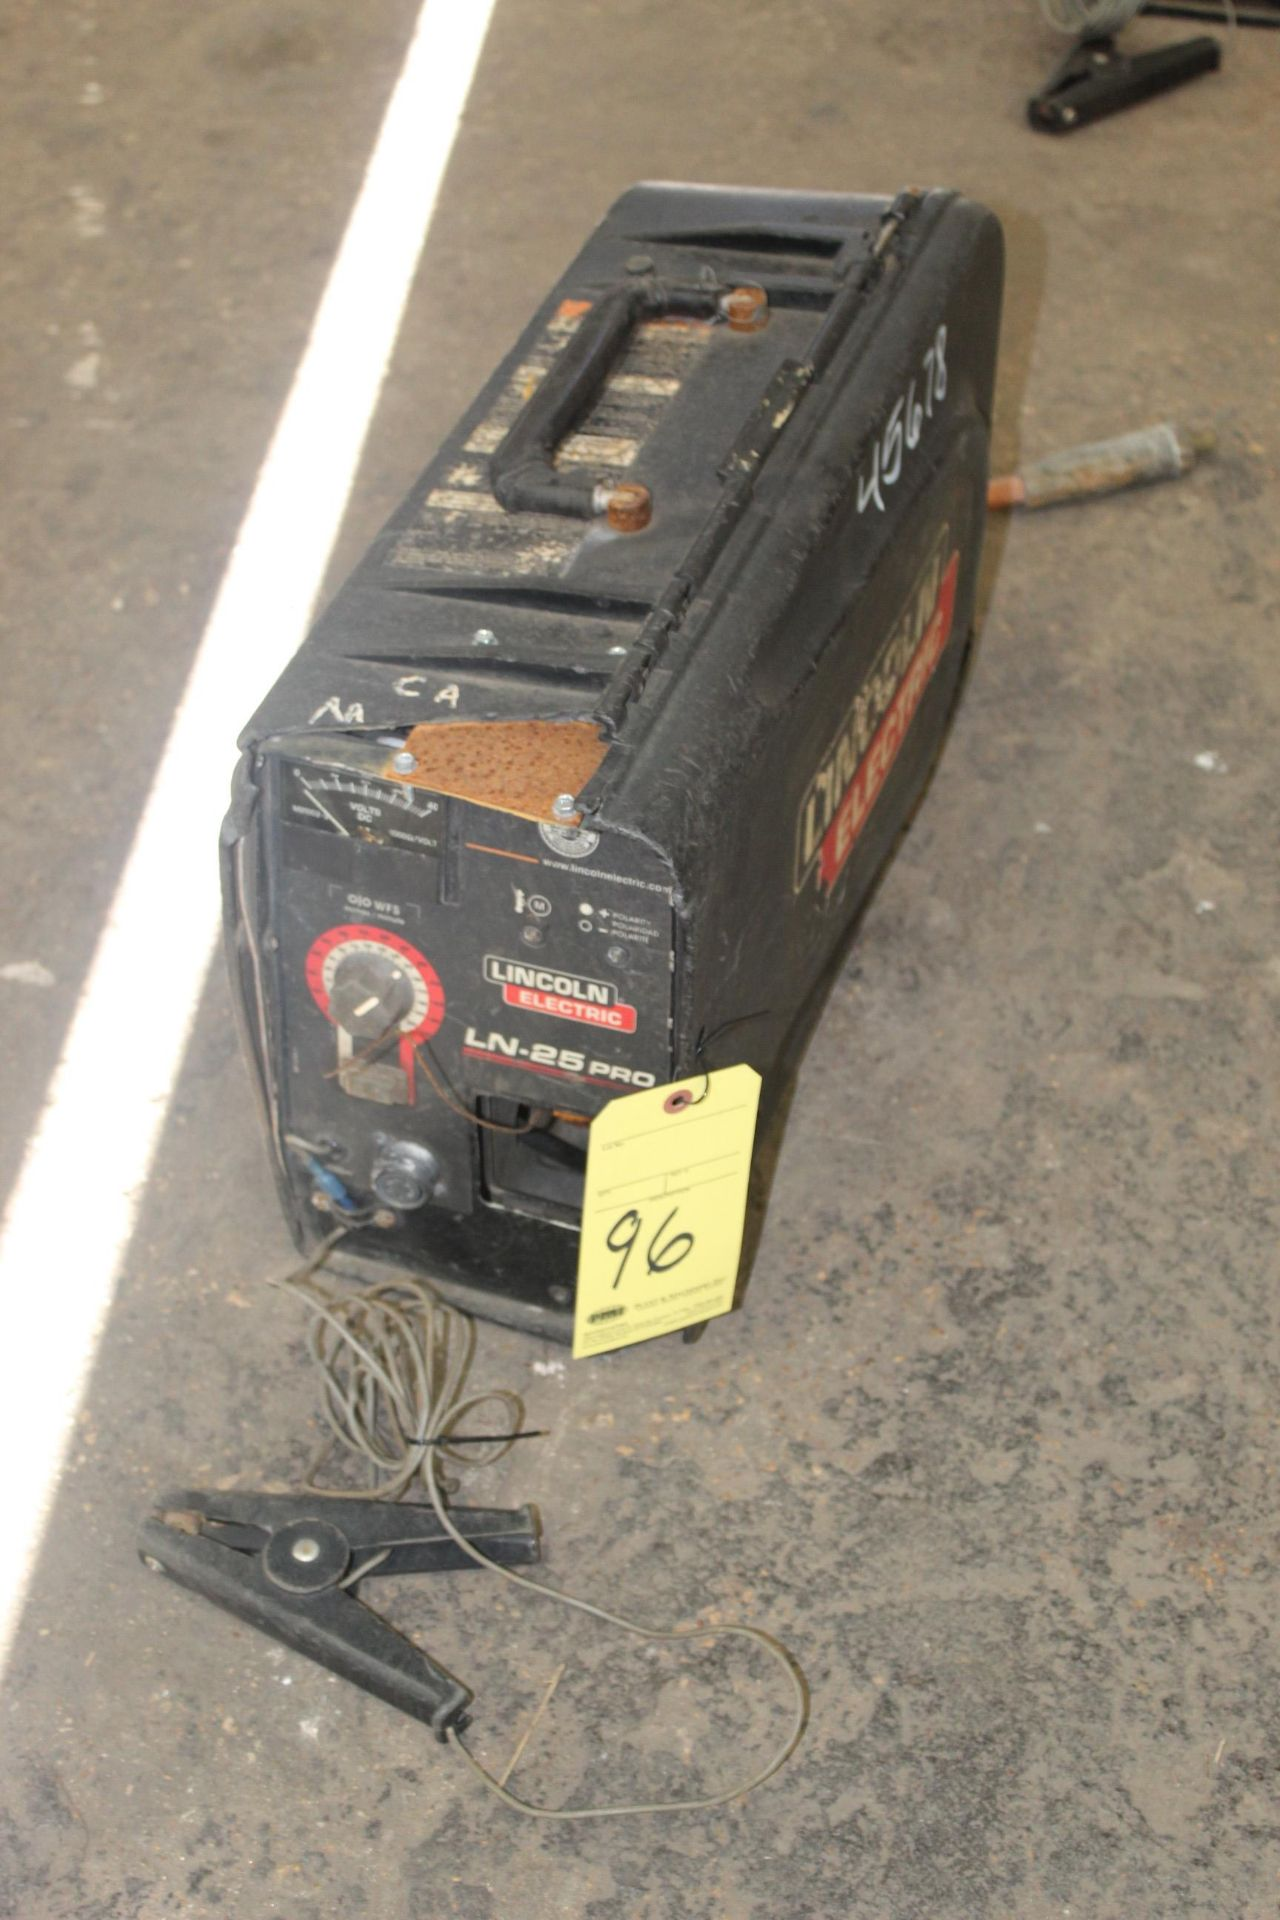 Lot 96 - PORTABLE SUITCASE WIRE FEEDER, LINCOLN ELECTRIC MDL. NLN-25 PRO, S/N U1110701504